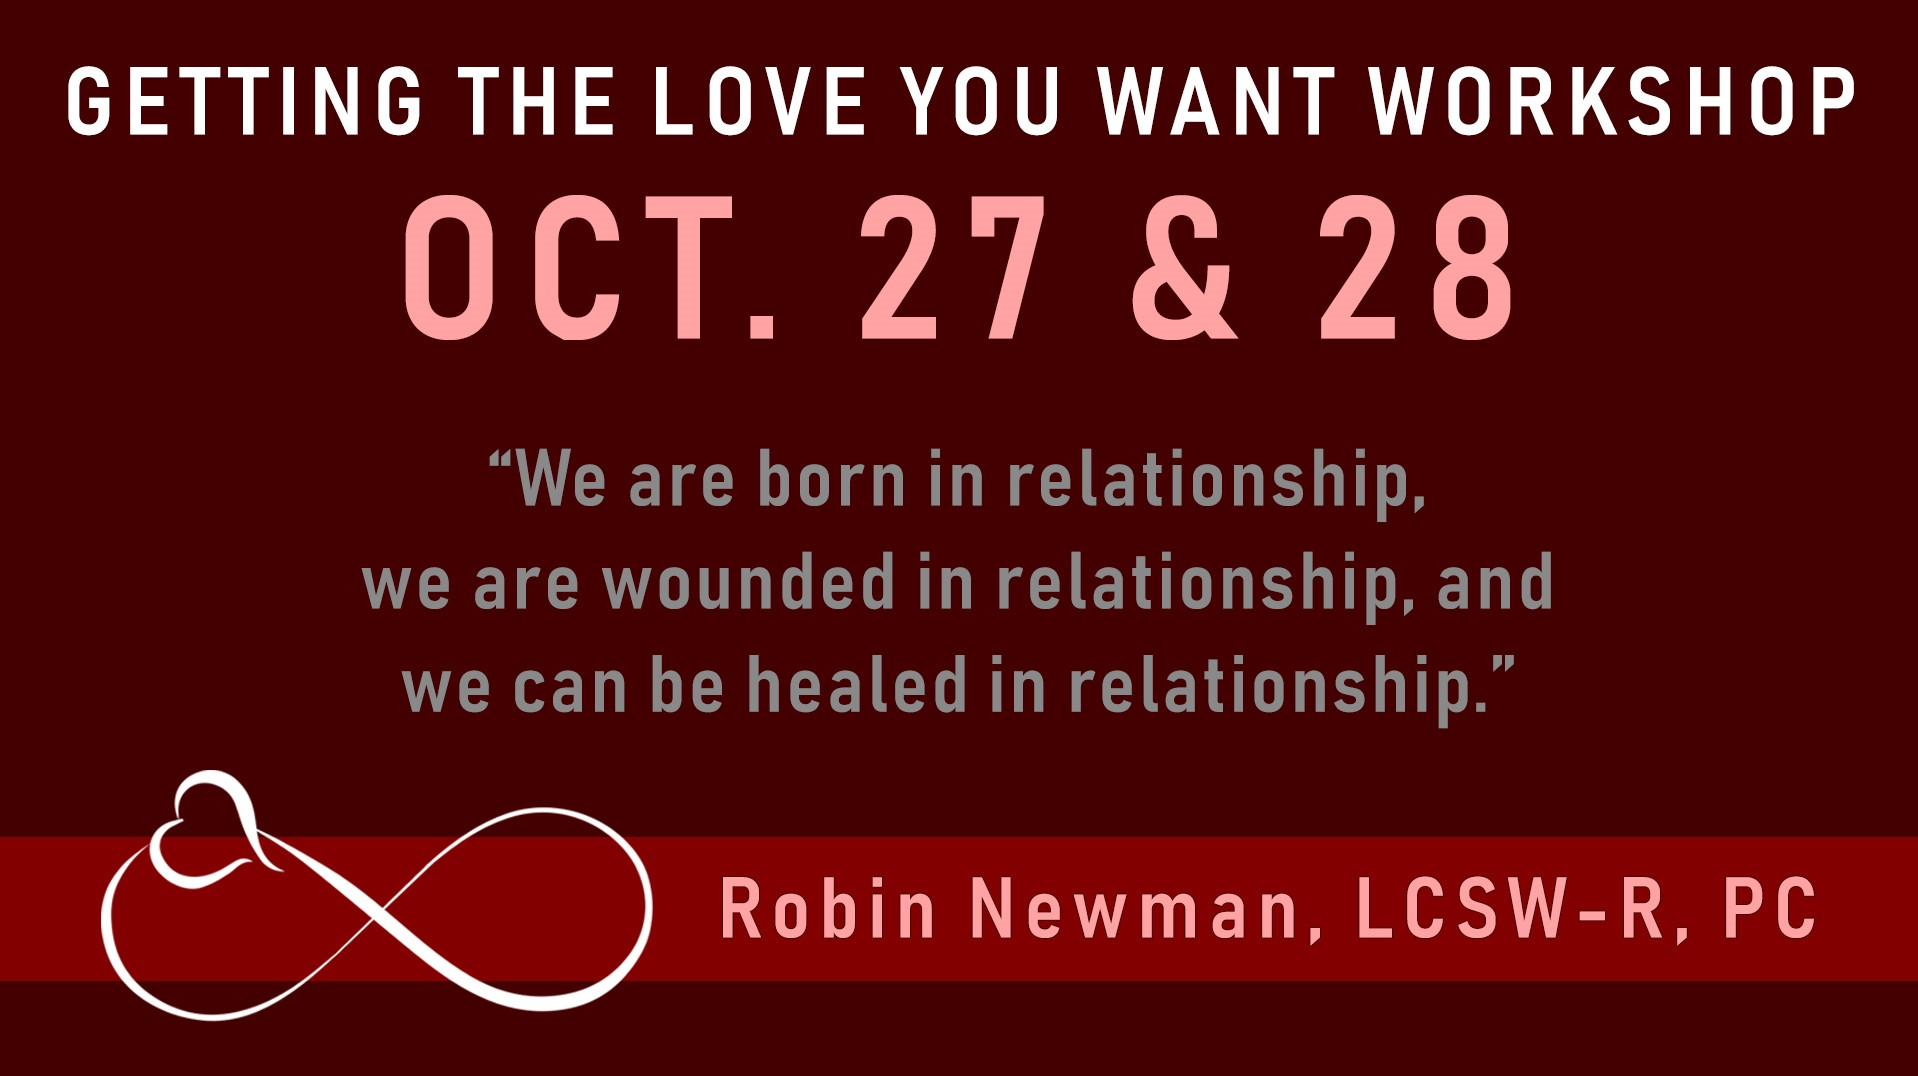 Long Island Couples Workshop October 2018